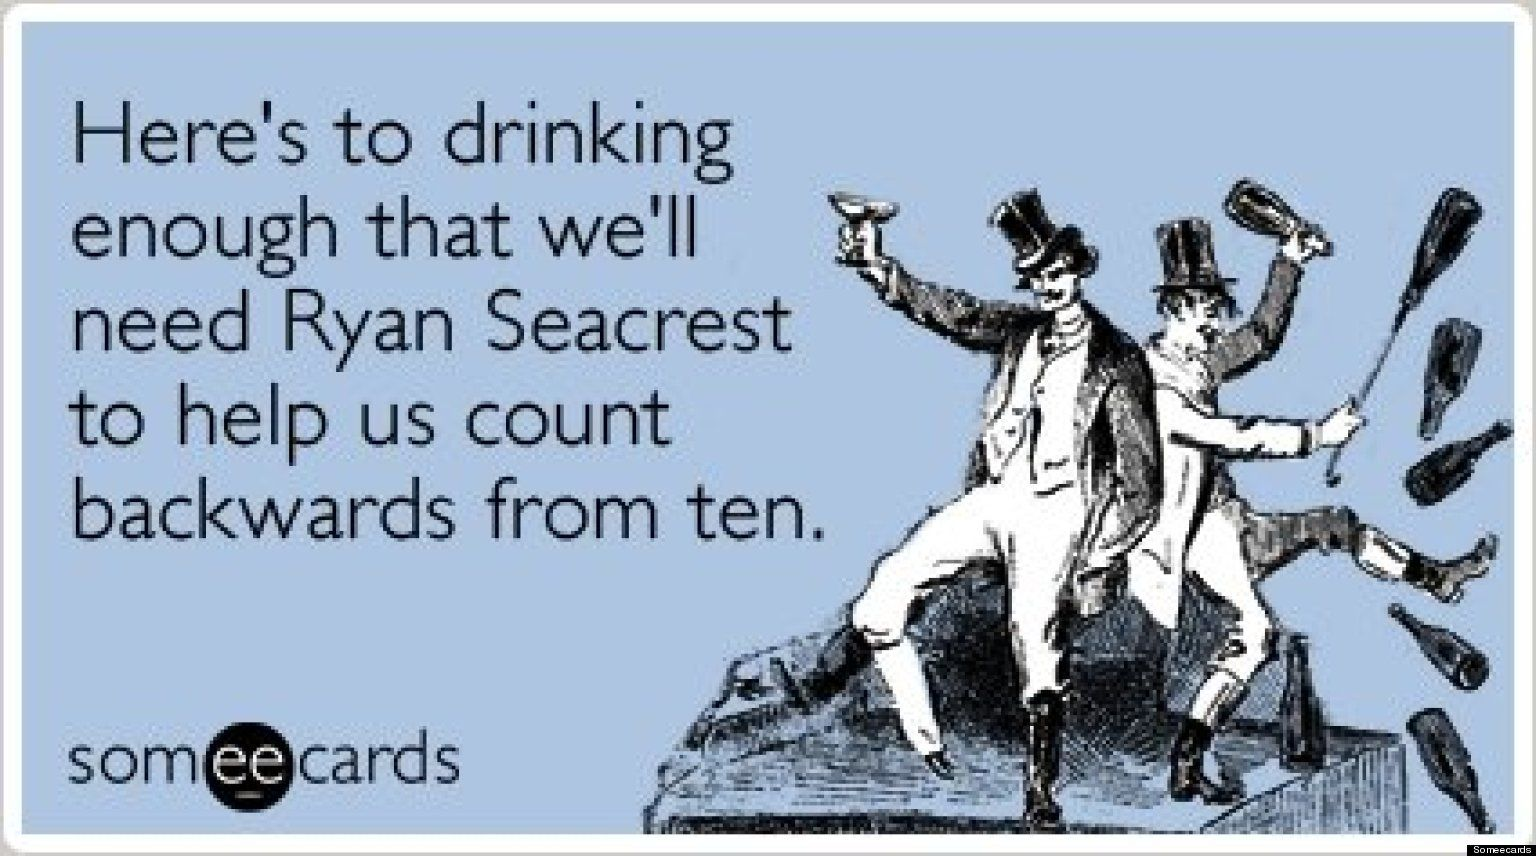 The Funniest New Year Someecards For 2012 (PICTURES)